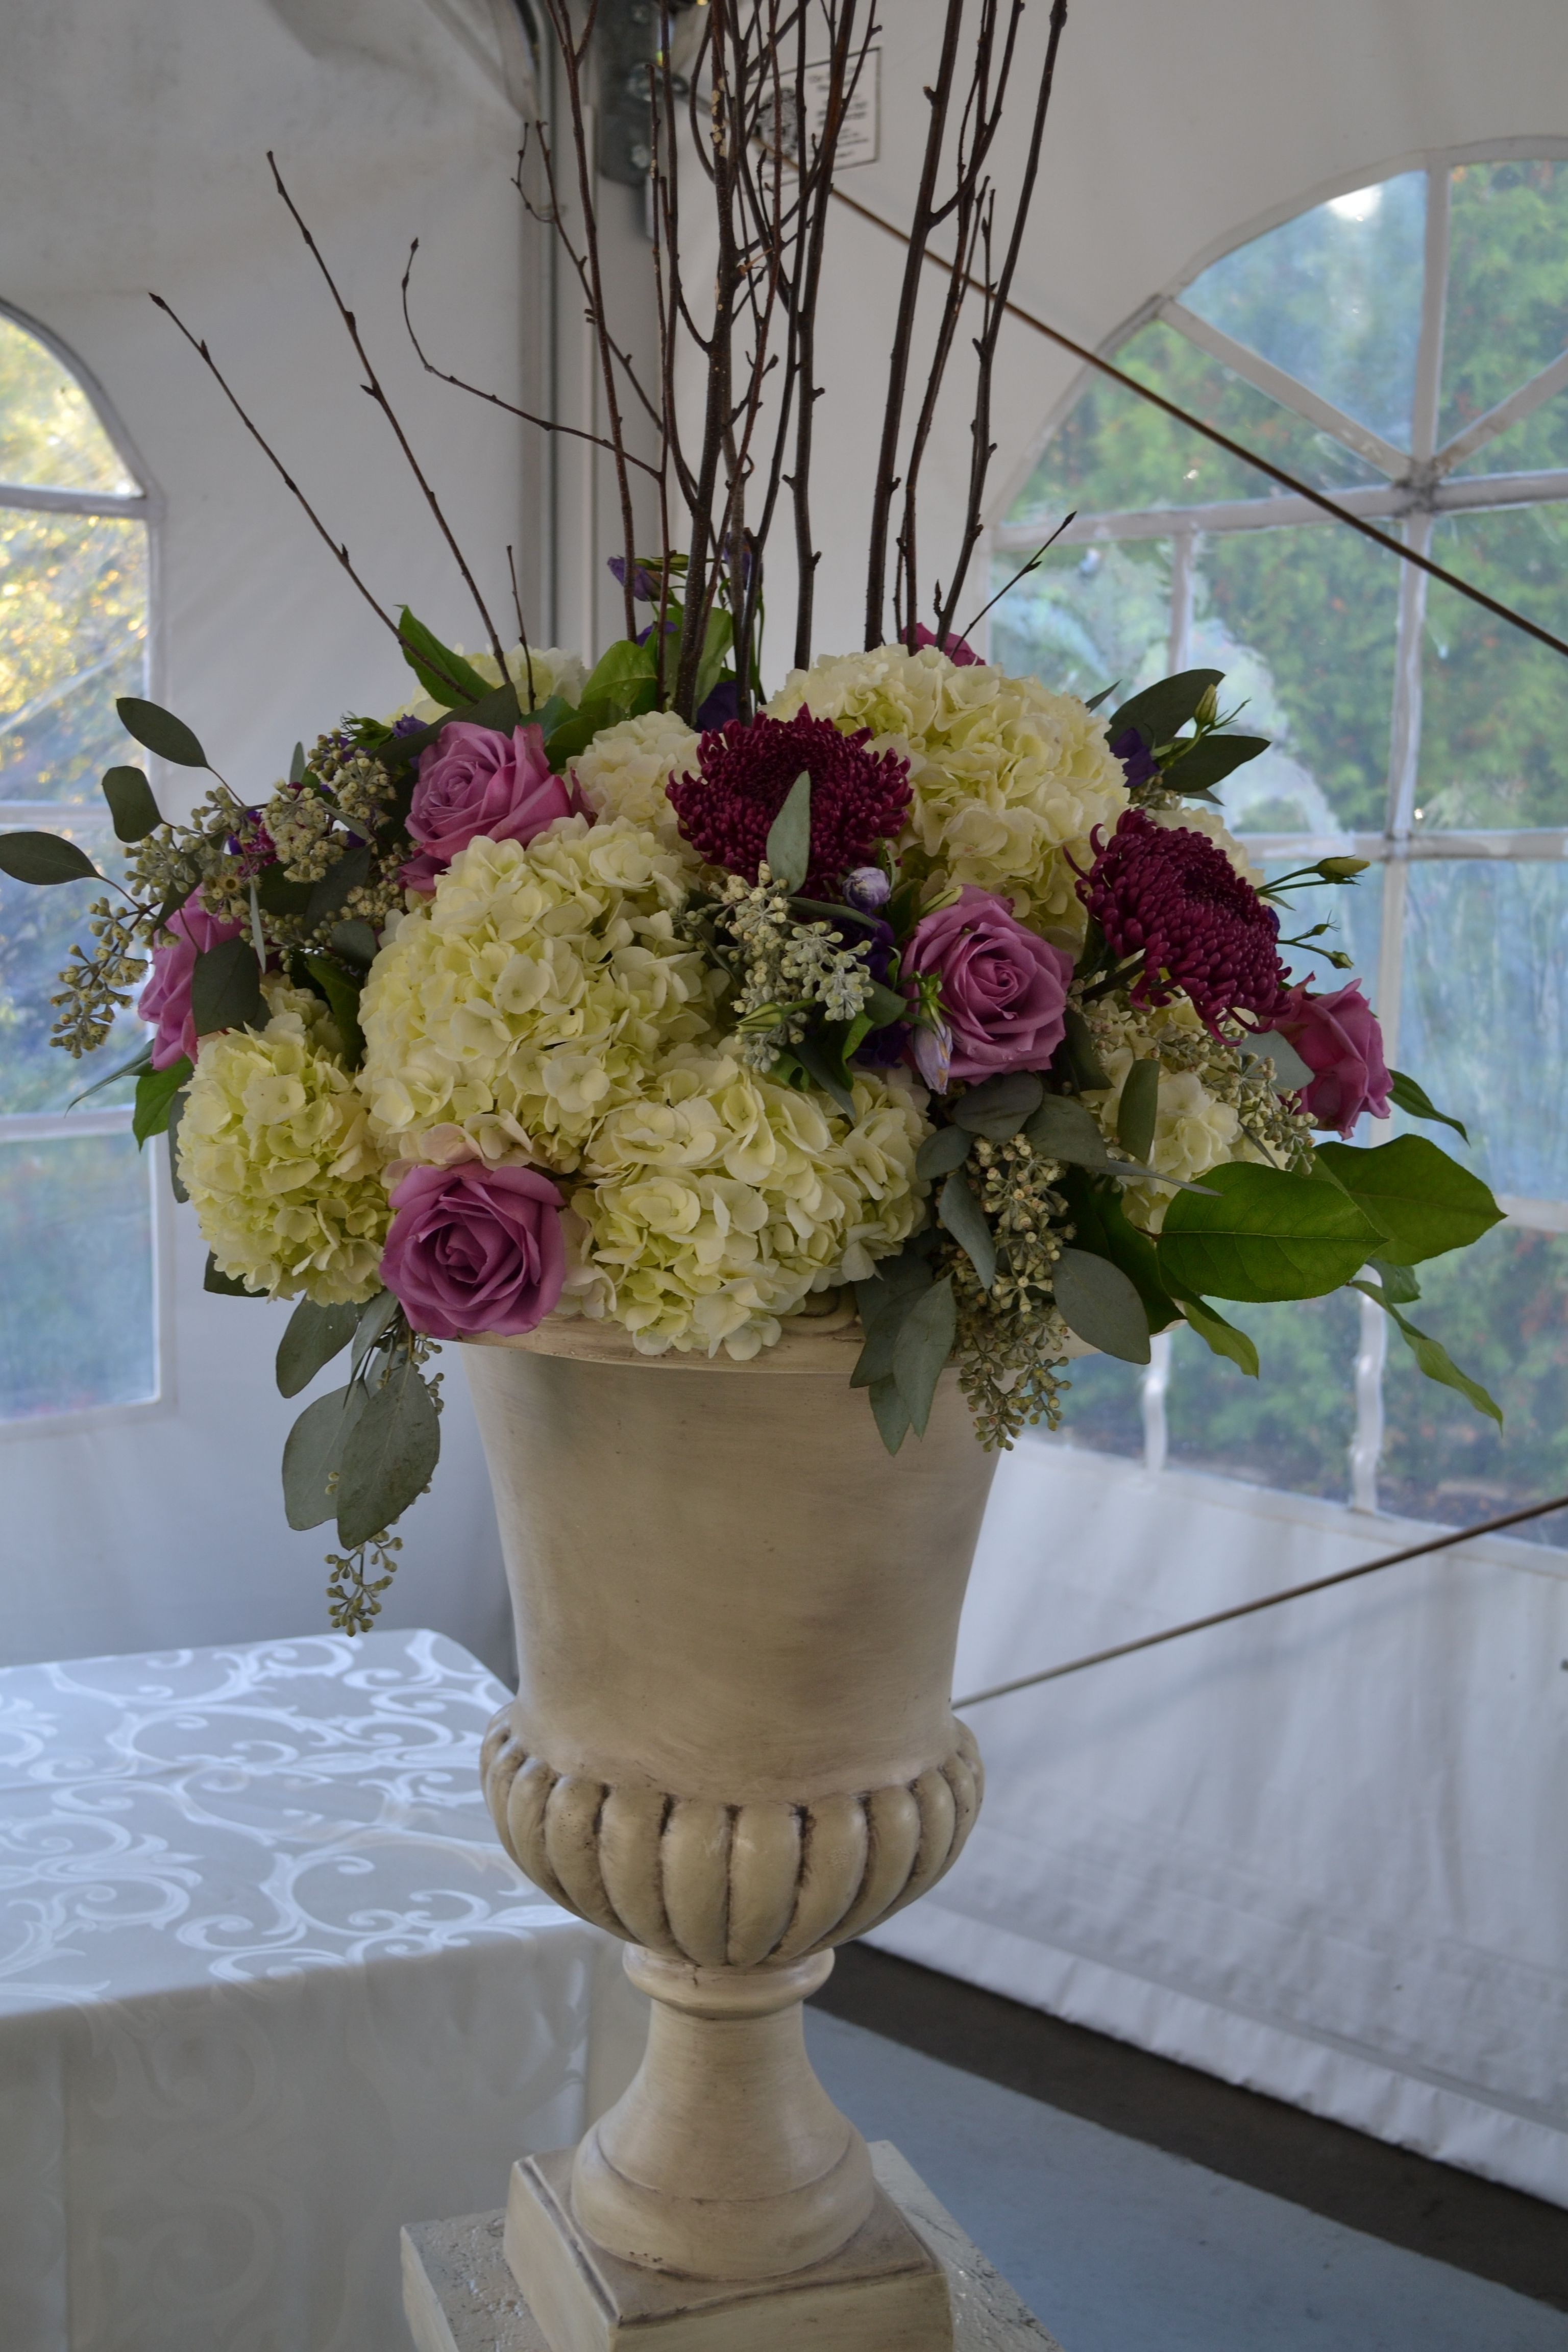 Wedding planning decor and flowers by lepapillonevents wedding planning decor and flowers by lepapillonevents toronto wedding izmirmasajfo